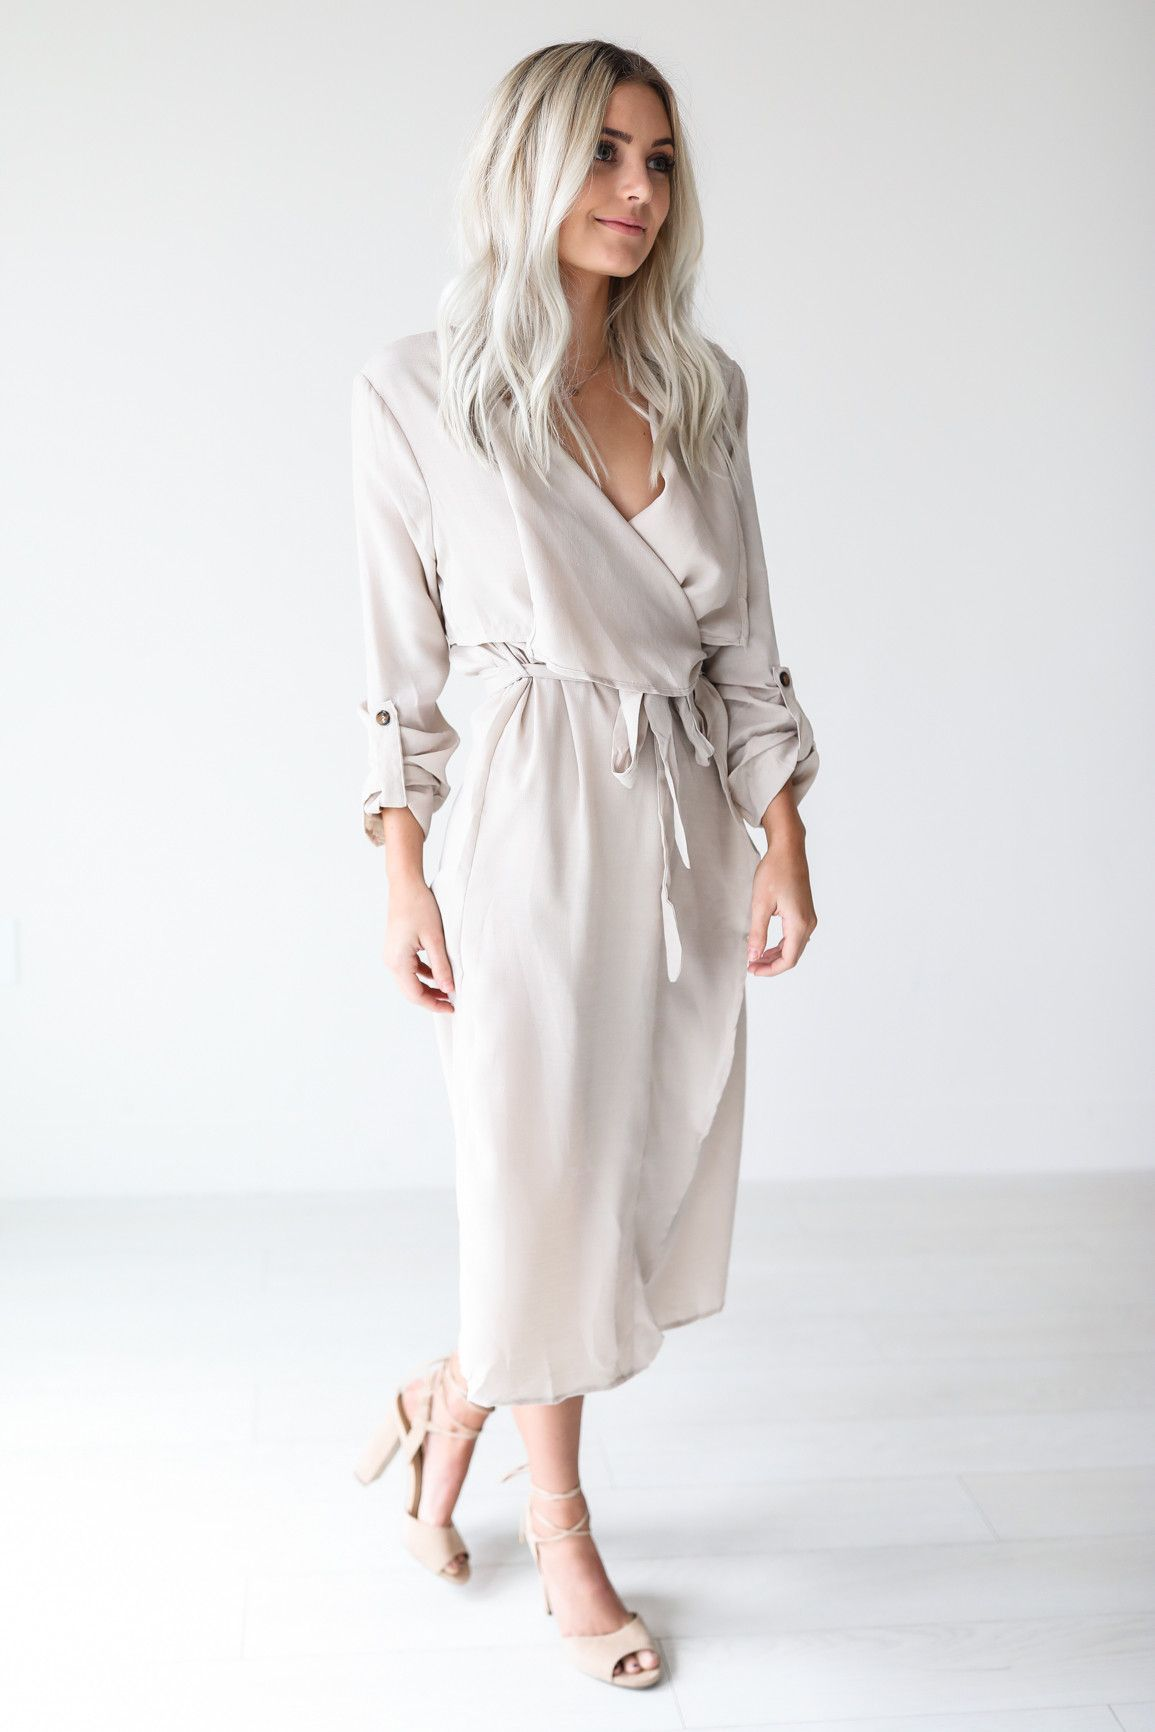 Beige collared long sleeved wrap dress u available in sizes s m l